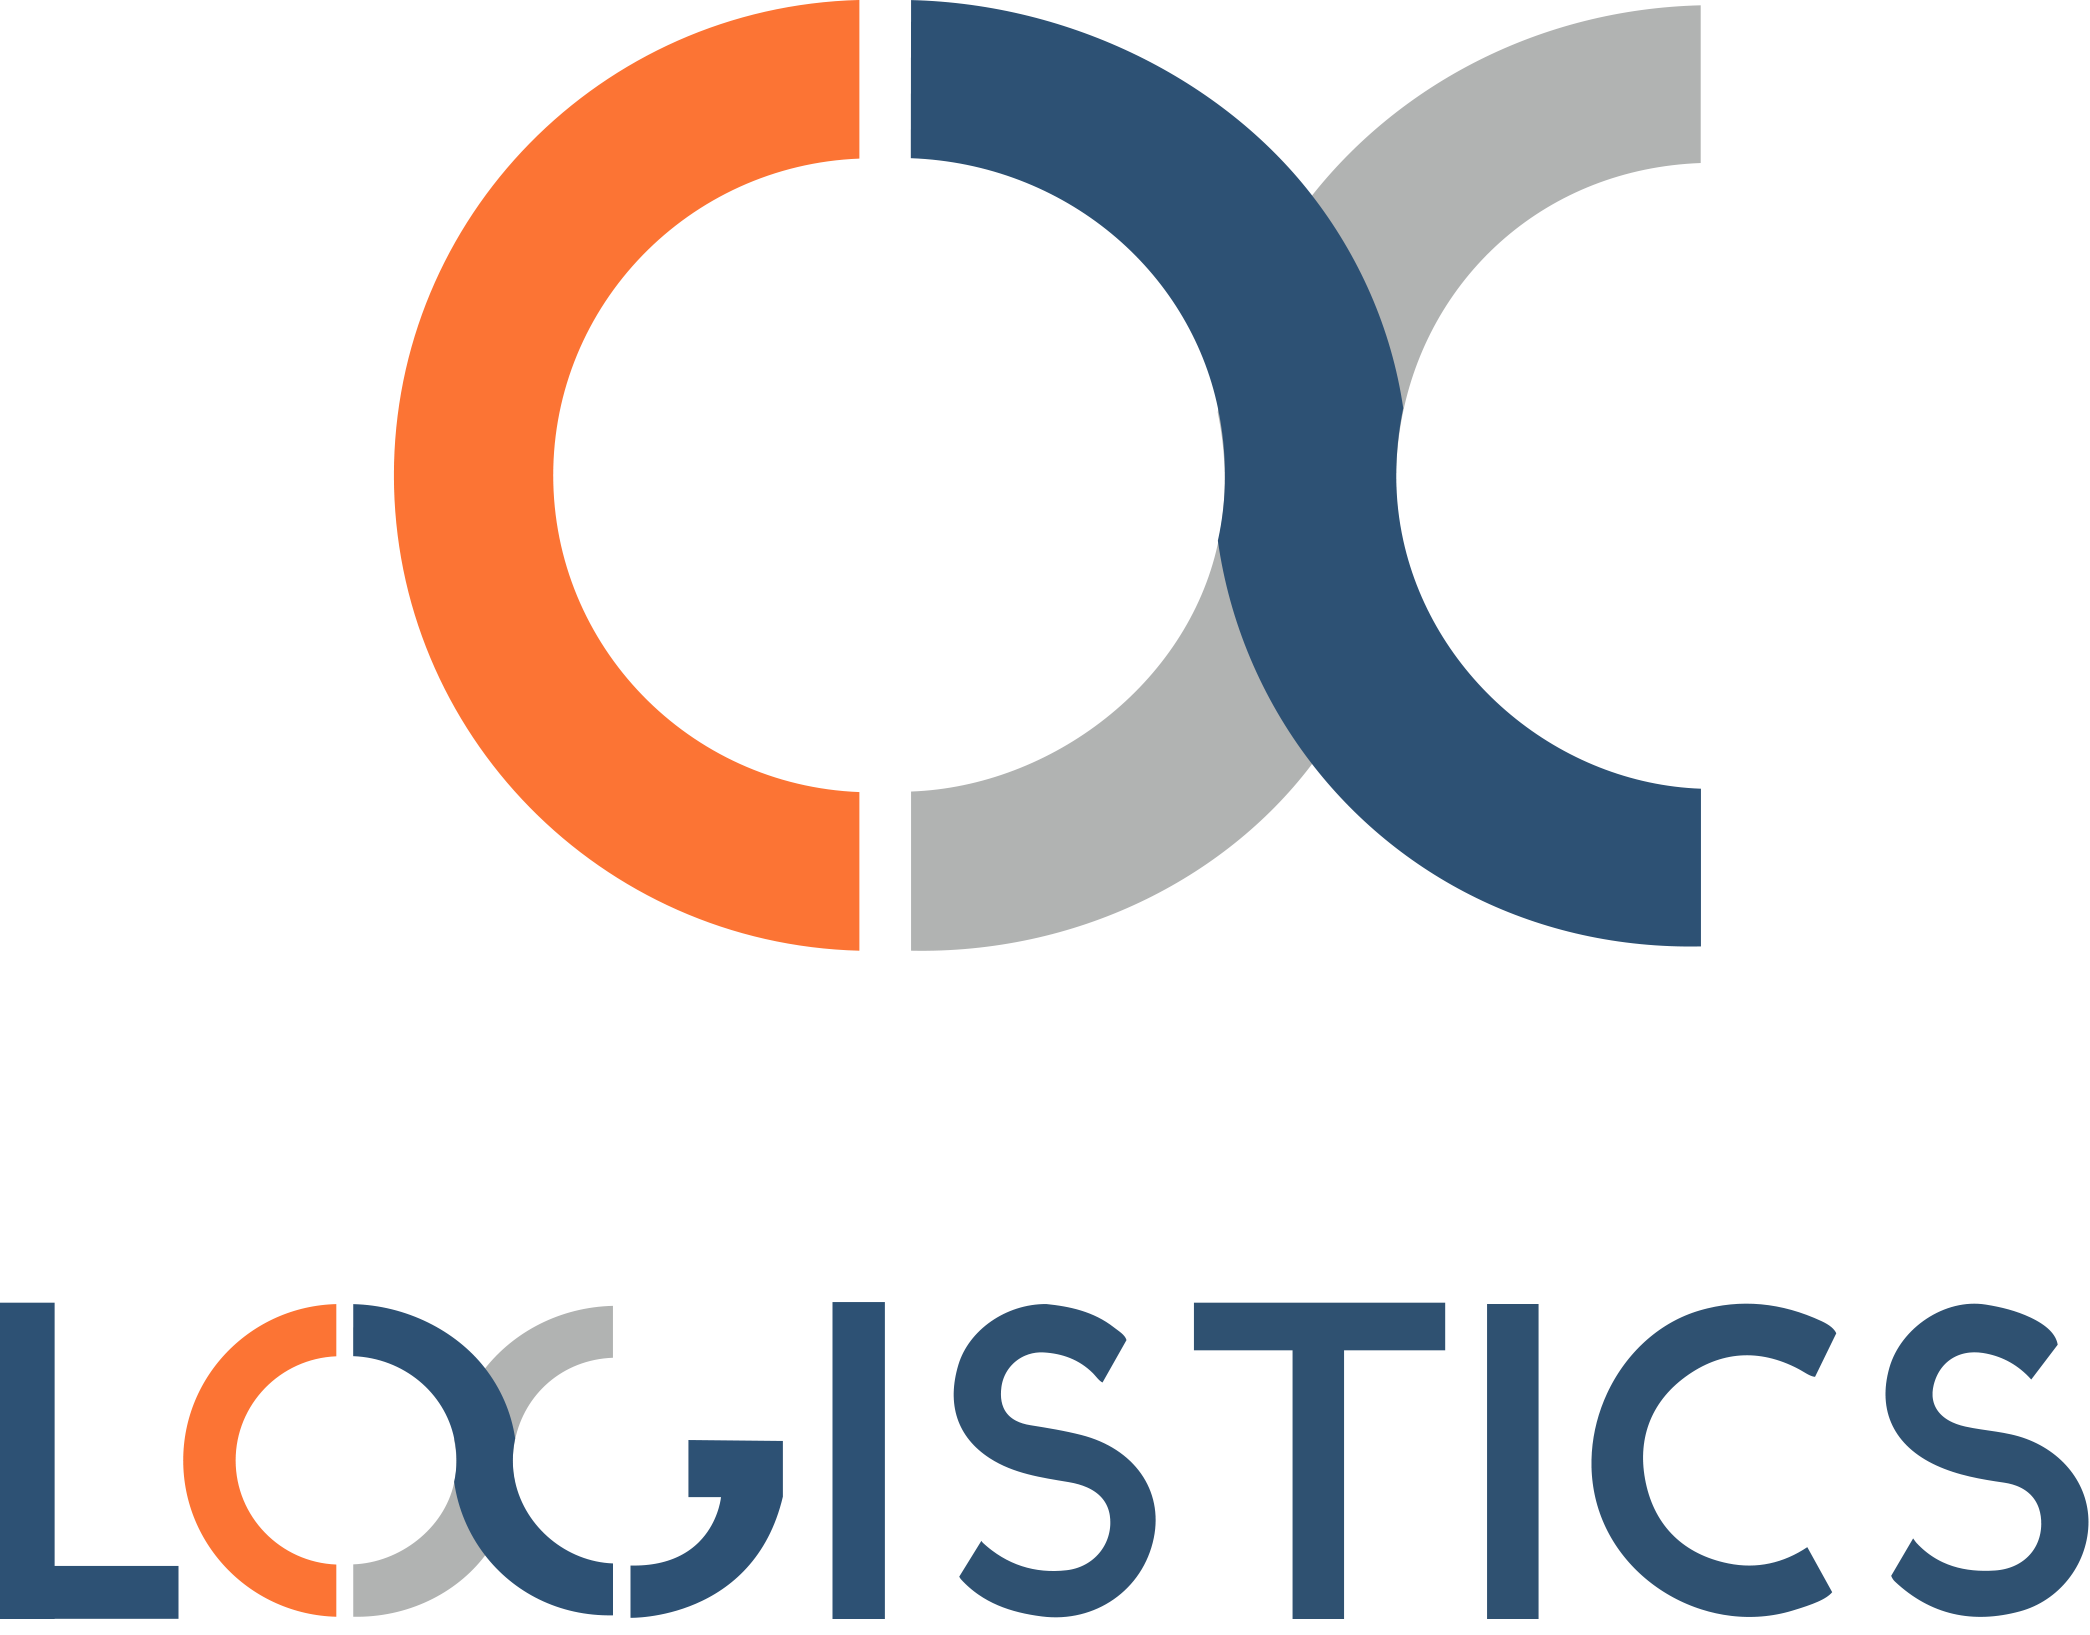 <p>CX Logistics&nbsp;take pride in being regarded as one of the most reliable and affordable logistic and warehousing service providers in Singapore. As a reputable&nbsp;logistic service provider, we excel at a range of logistic services, which includes trucking services, warehousing services, logistic services, and a range of other ancillary services. We have years of experience in the business of logistics, warehousing, distribution, trucking and supply chain management services, and aim to provide our clients with convenience, reliability and affordability through our premium&nbsp;logistic services.</p><p>Our team of experts at all levels of our services have years of experience backing them, which adds the credibility of an expert workforce. This also helps us in cutting down response time, and providing punctual delivery and services at all times, whether it is trucking service or warehousing services. Our goal is to make a positive difference in your business through our services, and build long term relationship with you. Our commitment to our clients can be seen by the amount of emphasis we lay on team work, customer support services and making technological upgrades in our logistic process and equipment from time to time.</p><p>Our experience in all the fields we serve in, and the range of services we provide, makes us one of the most comprehensive logistic service providers in the nation. And, with the help of continuous support and trust of our clients, we aim to stay at the top of the game, and humbly so. Our sophisticated systems, neatly designed logistic process, state of the art logistic tools and equipment, most advanced carriers, custom tailored services, and dedication to keep the costs low for end users, help us to provide logistic solution that aligns well with our clients' requirements. We welcome you to our site, and request you to consult with our logistic experts for your logistic needs, and rest assured of getting done.</p><p>We have years o